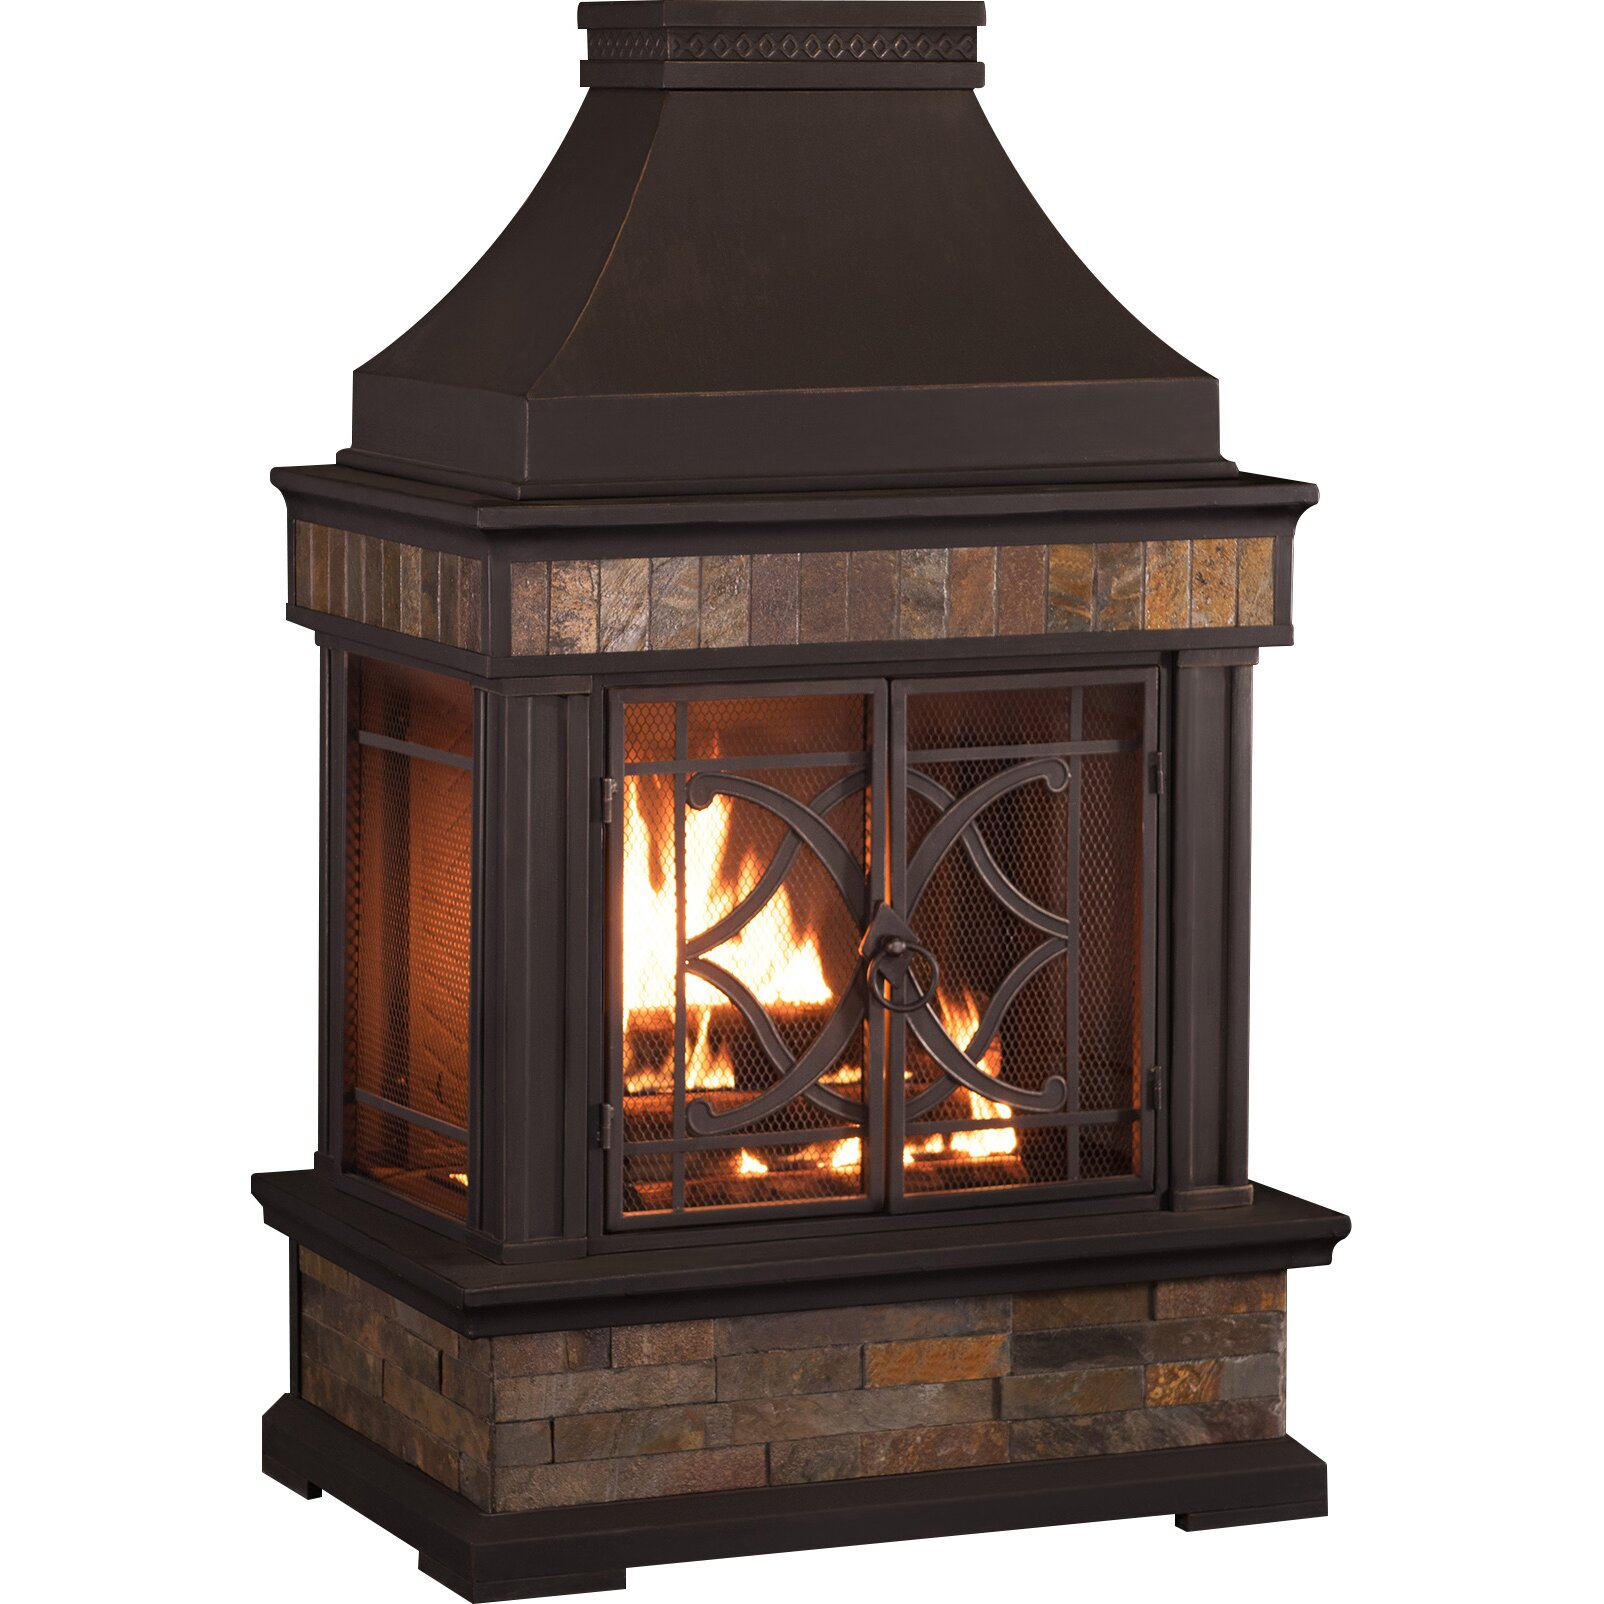 Sunjoy heirloom steel wood burning outdoor outdoor for Where to buy outdoor fireplace